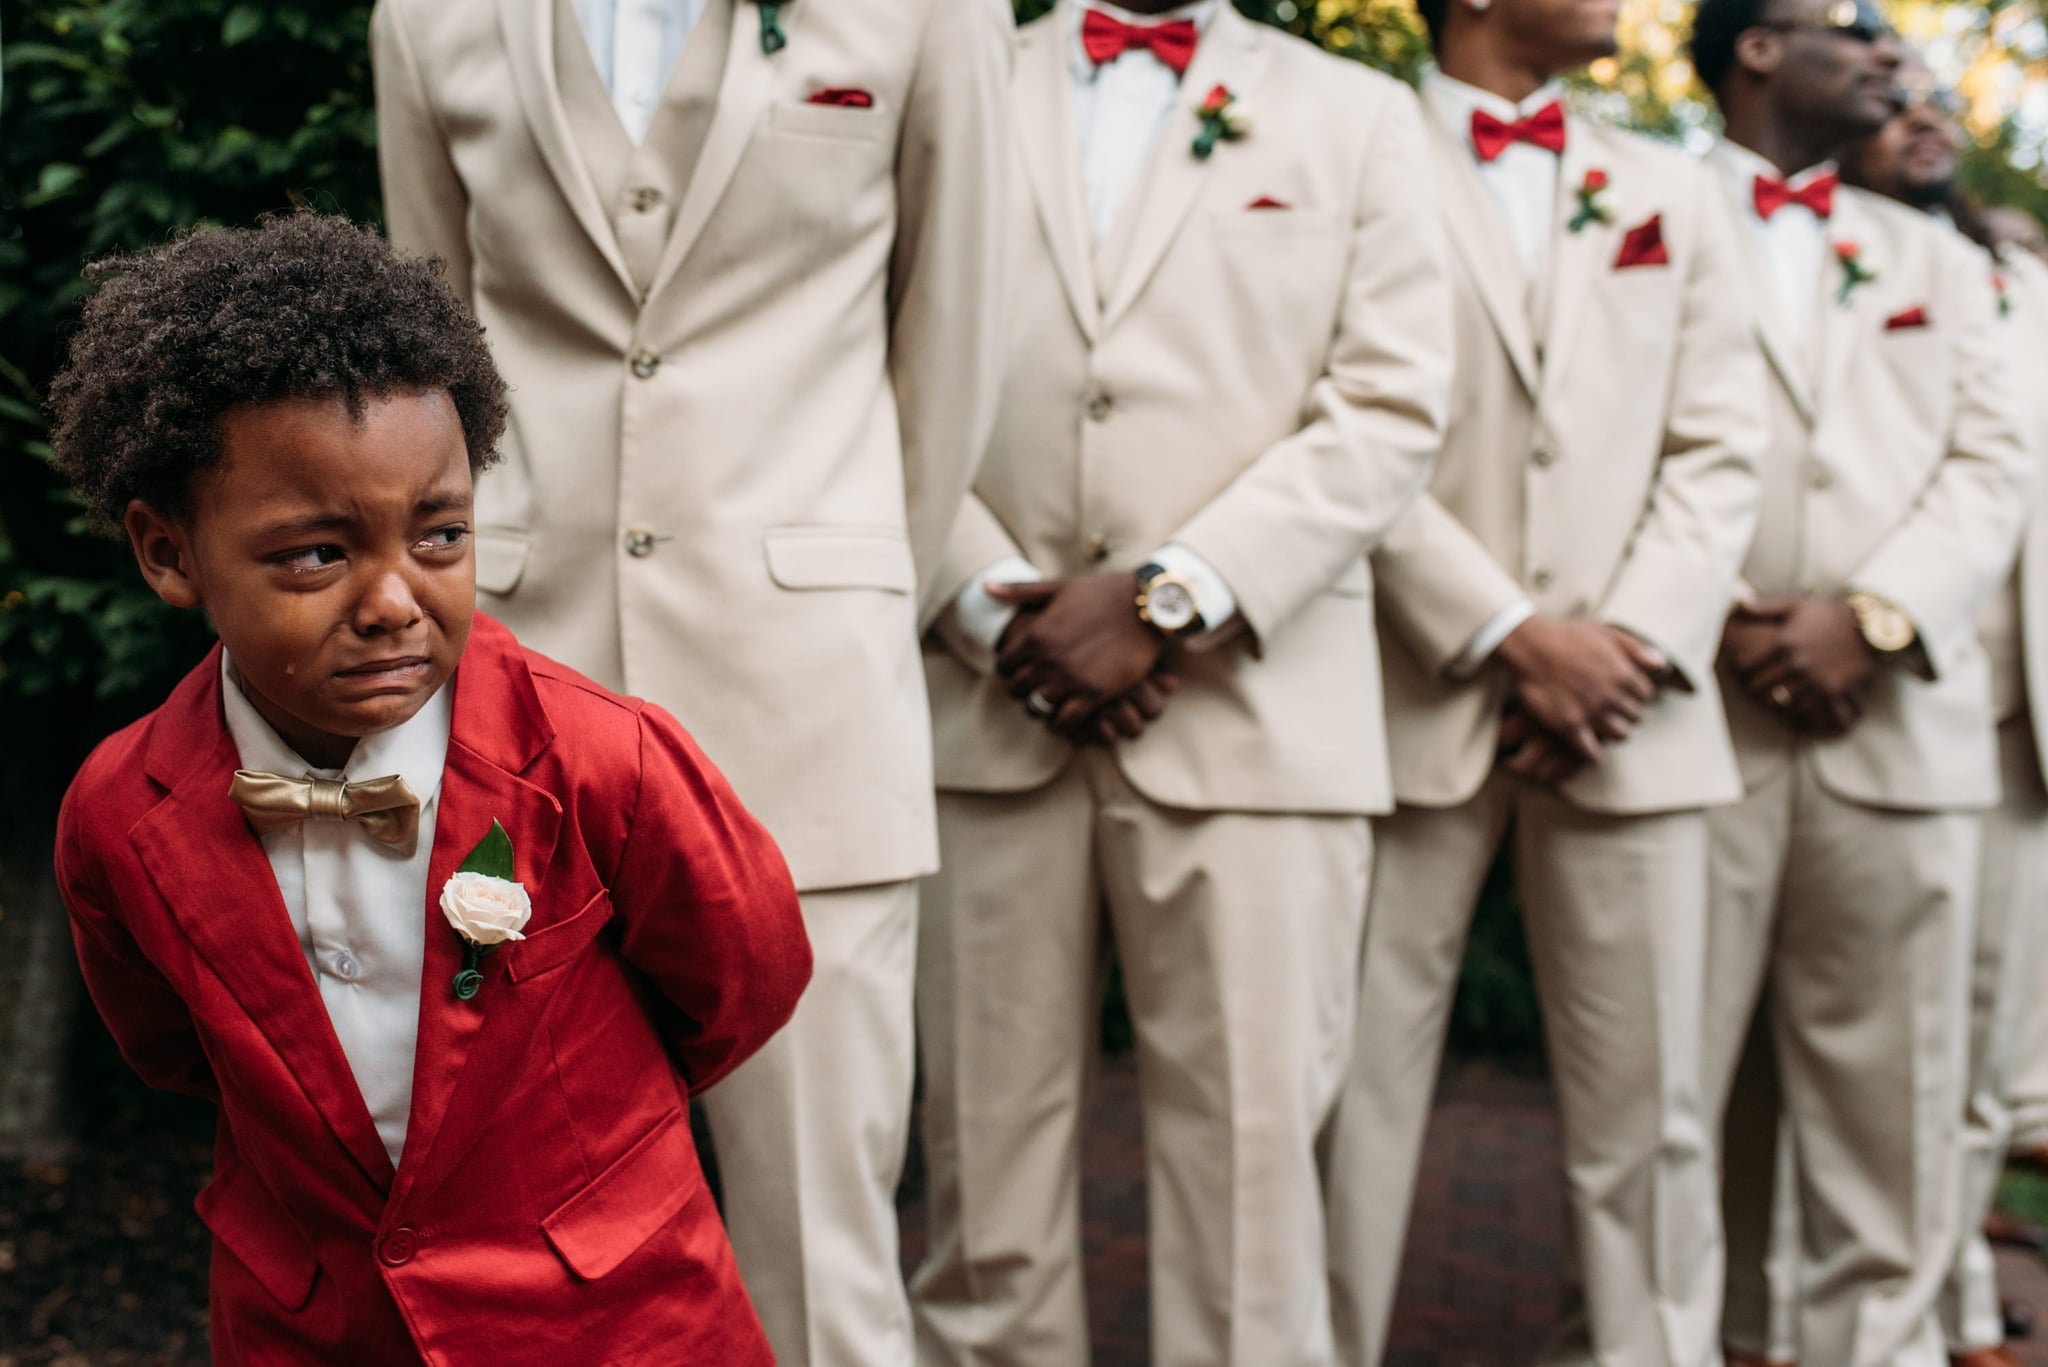 """Wedding Photographer on Prioritizing a Photo of the Bride's Son Over Her: """"This Was THE Moment"""""""